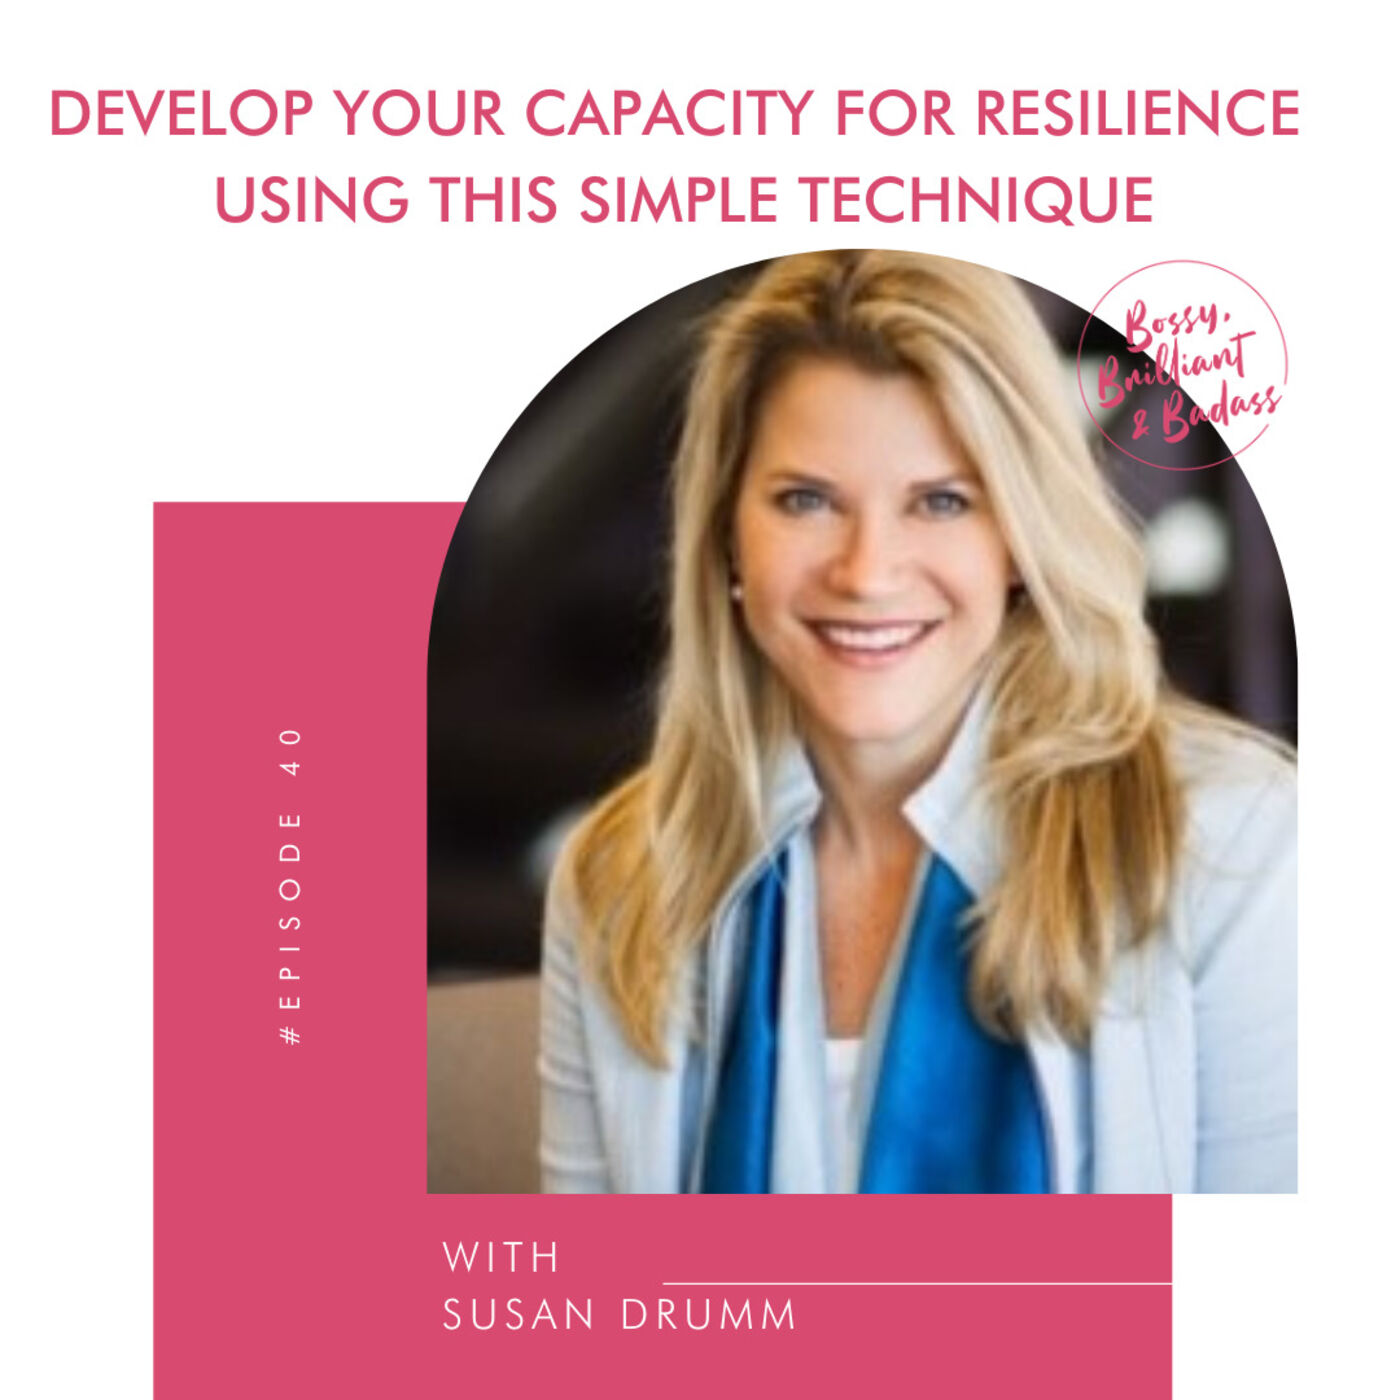 How to Build Your Capacity for Resilience Using this Simple Breathing Technique (with Susan Drumm)